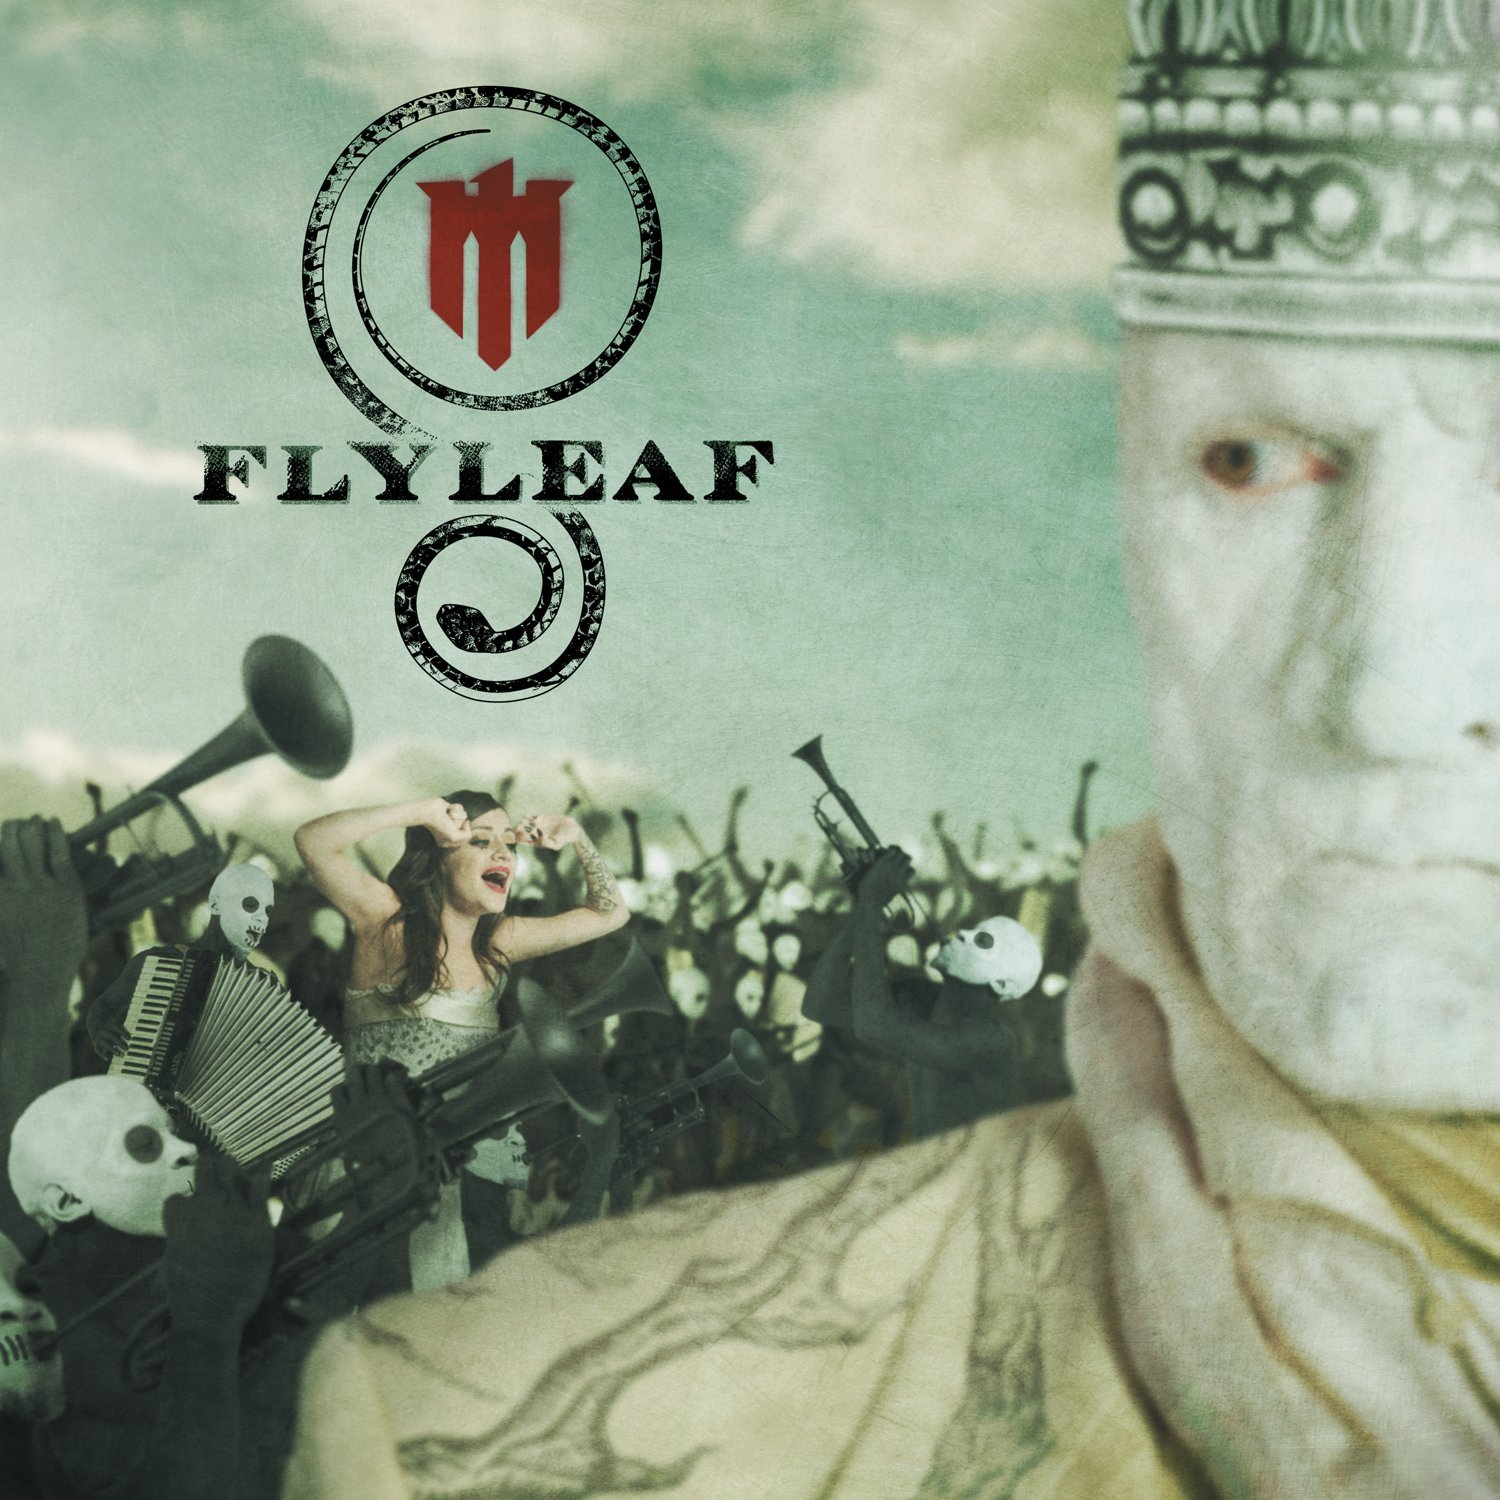 Flyleaf - Memento Mori [Expanded Edition] - Amazon.com Music